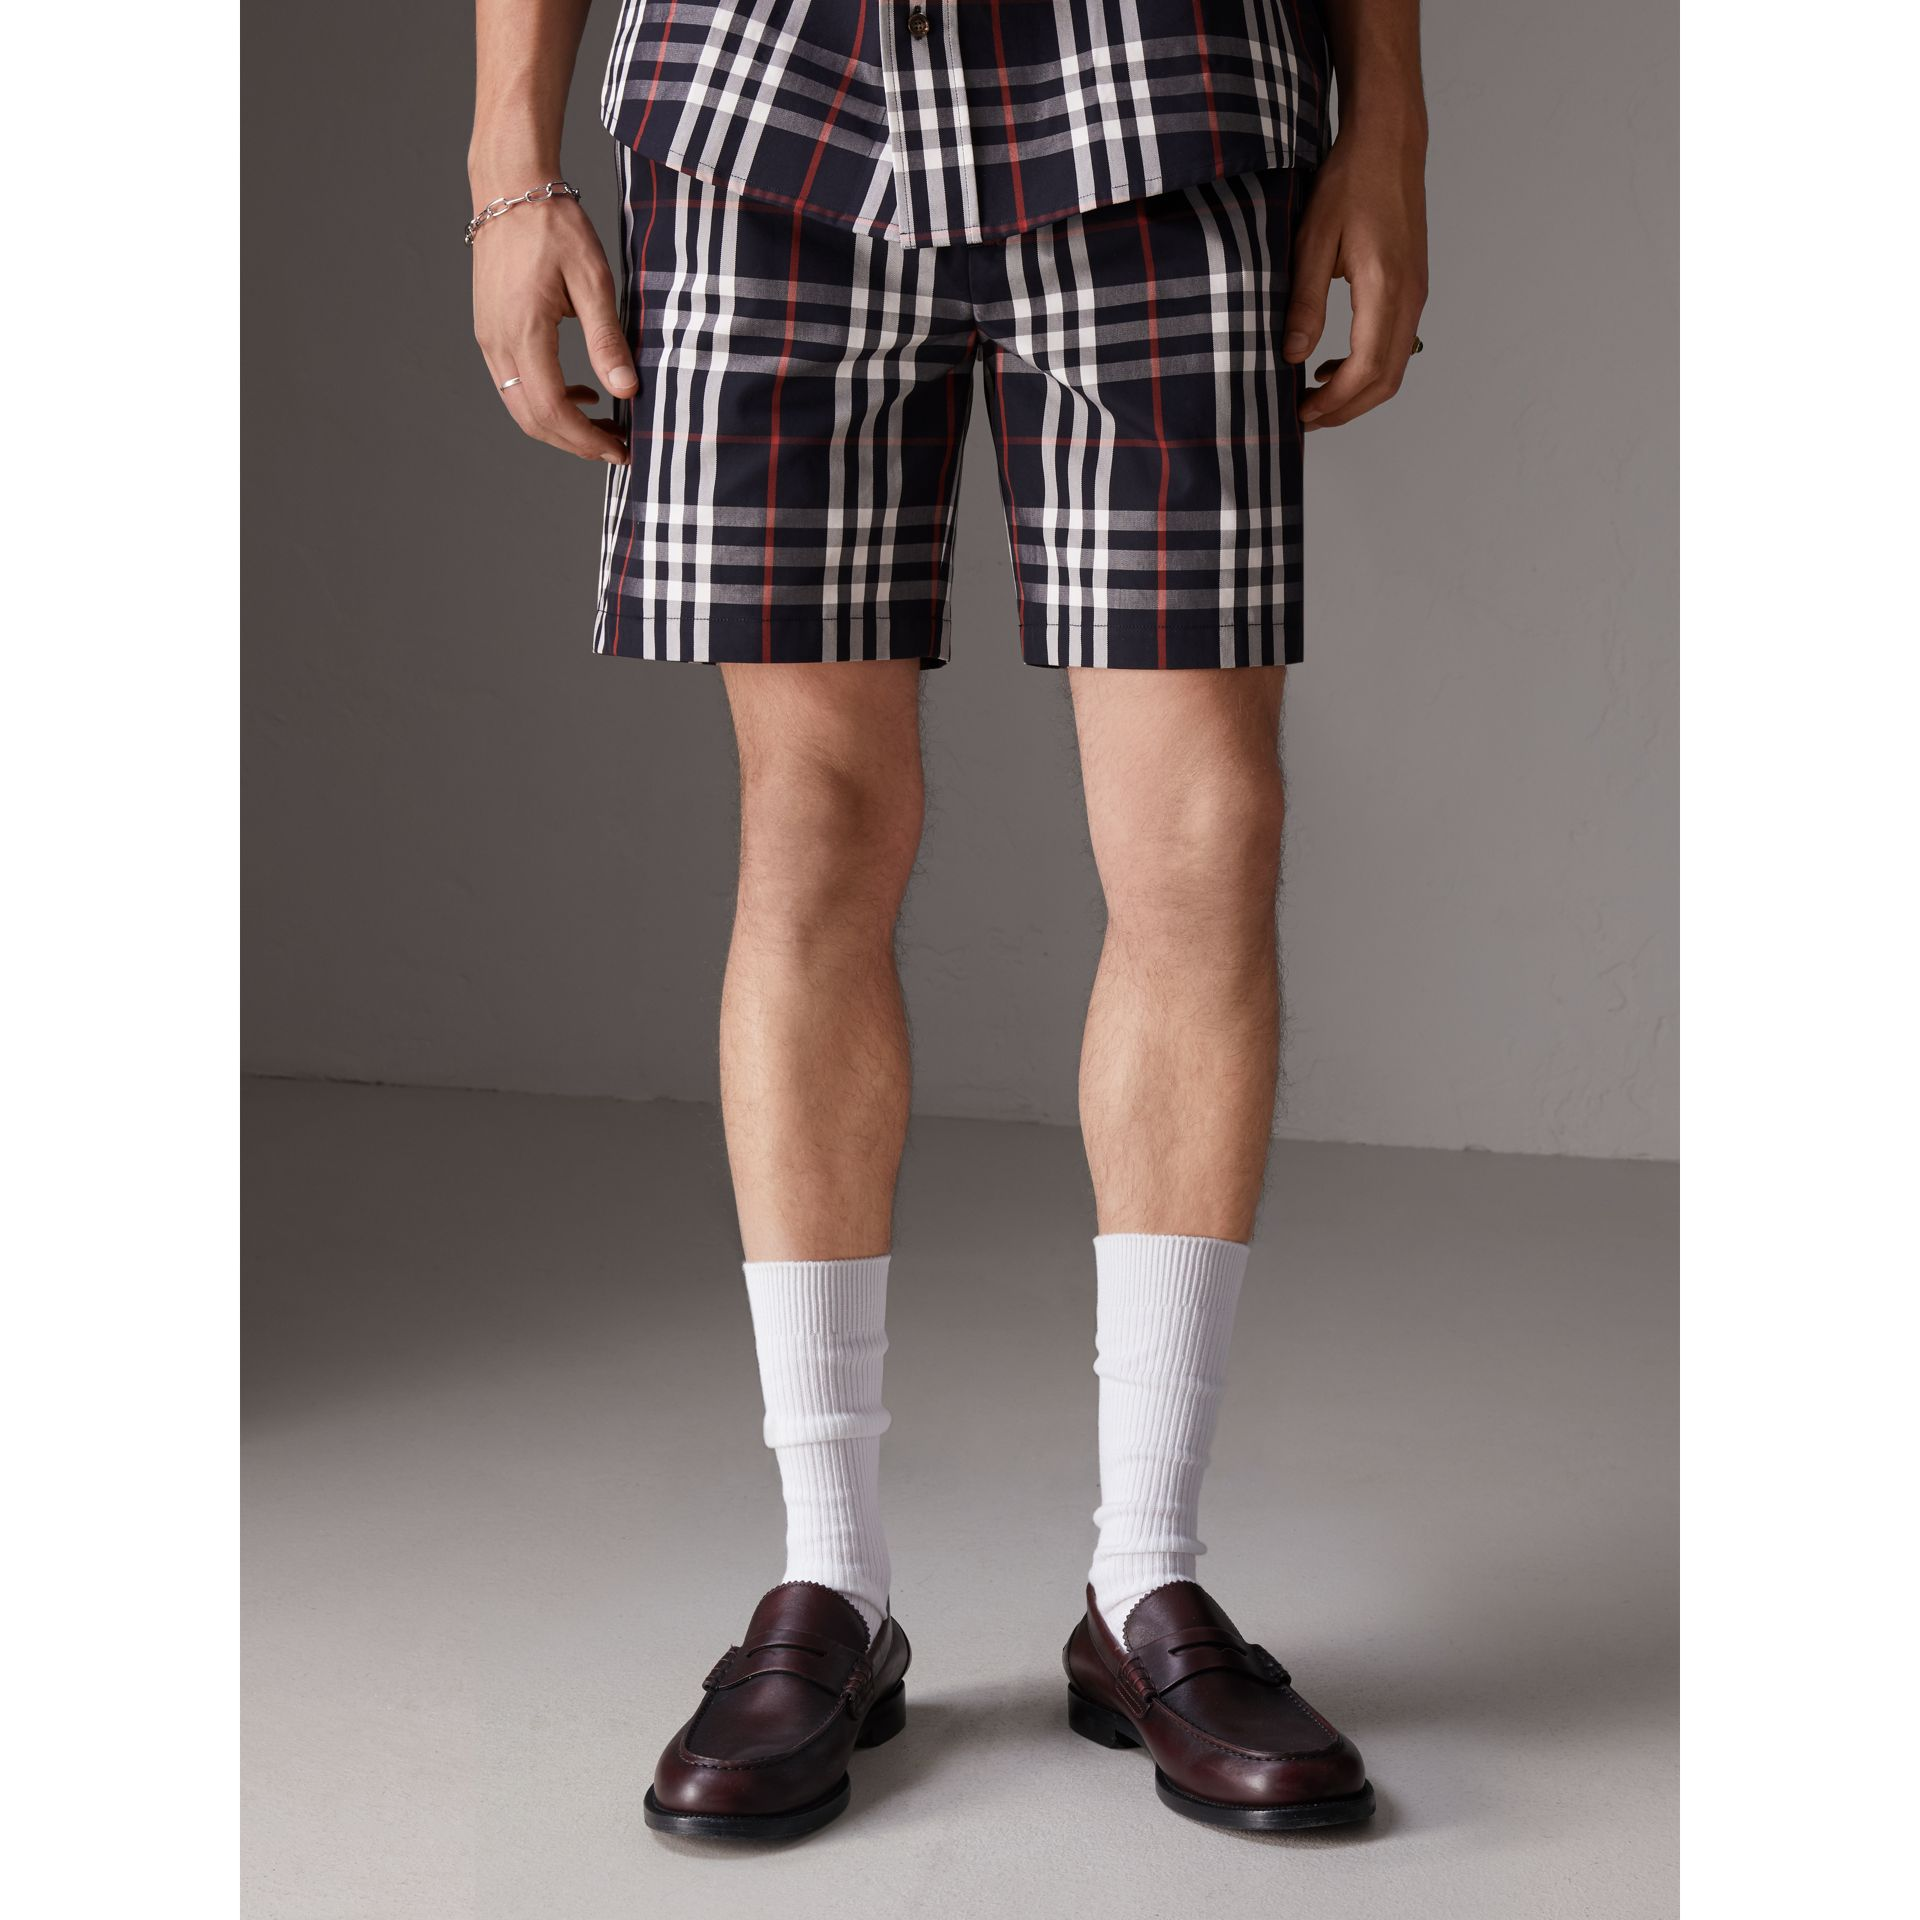 Gosha x Burberry Tailored Shorts in Navy | Burberry - gallery image 5